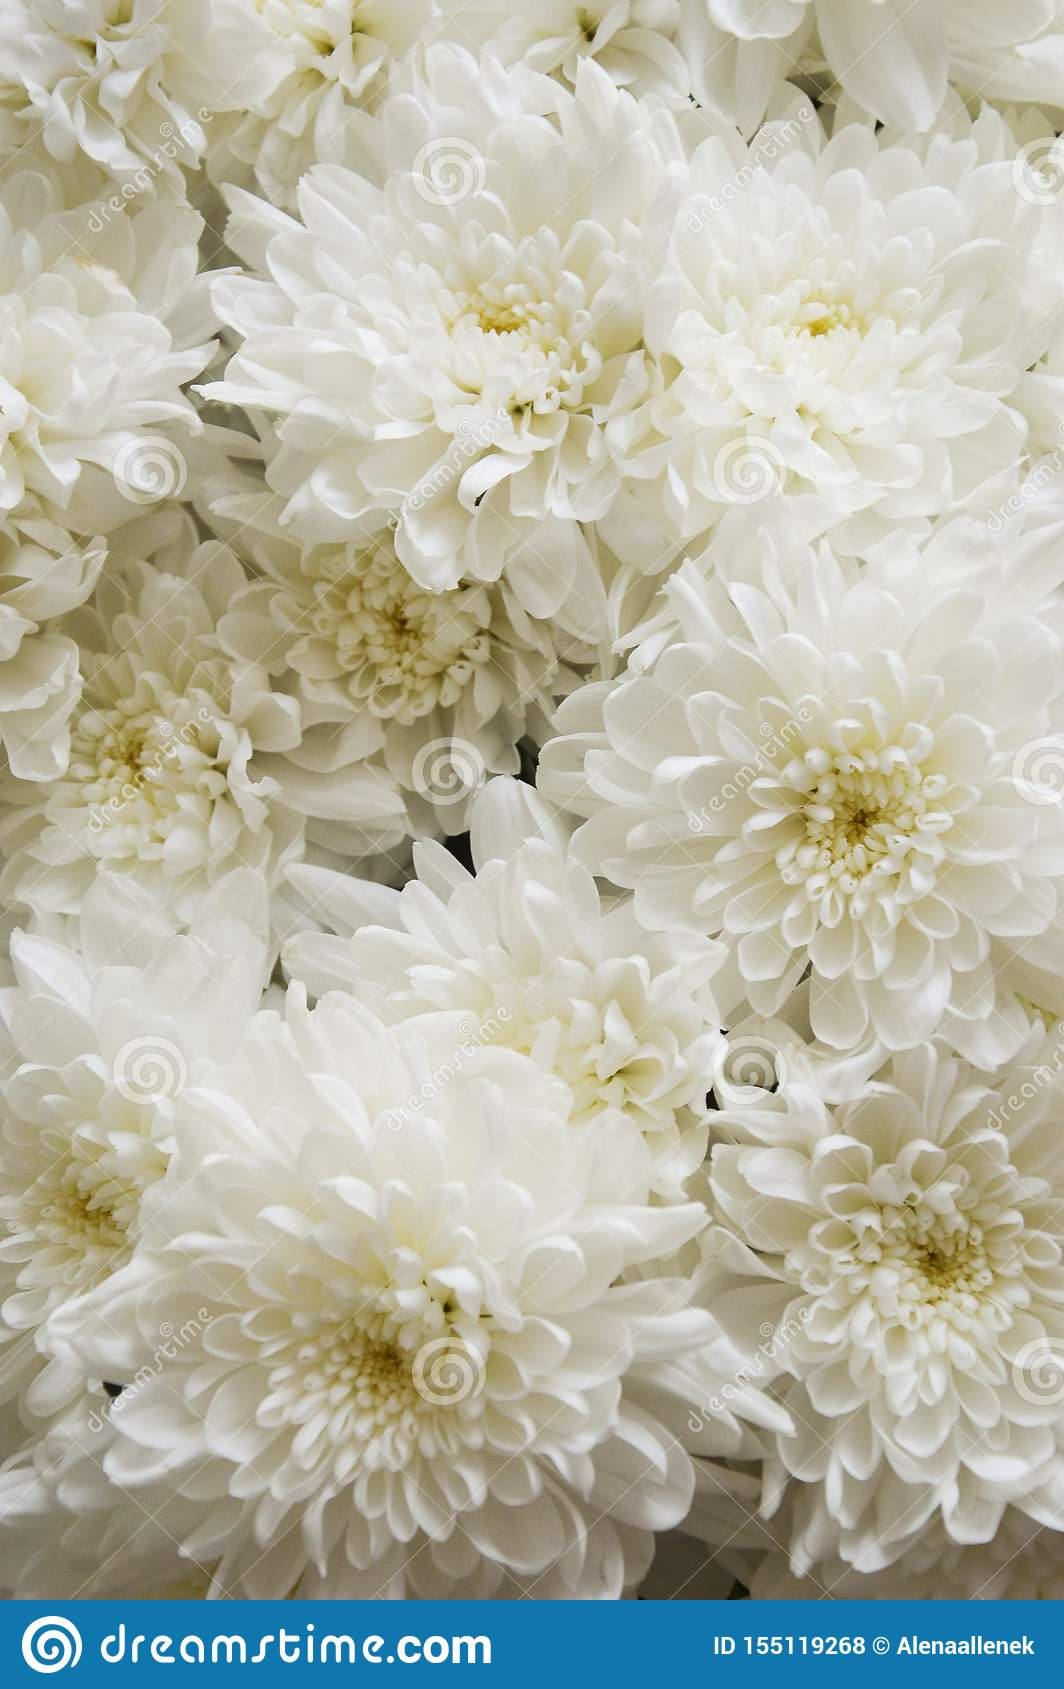 White Chrysanthemum Bouquet Of White Flowers Background For Postcards Stock Photo Image Of Chrysanthemum Bloom 155119268